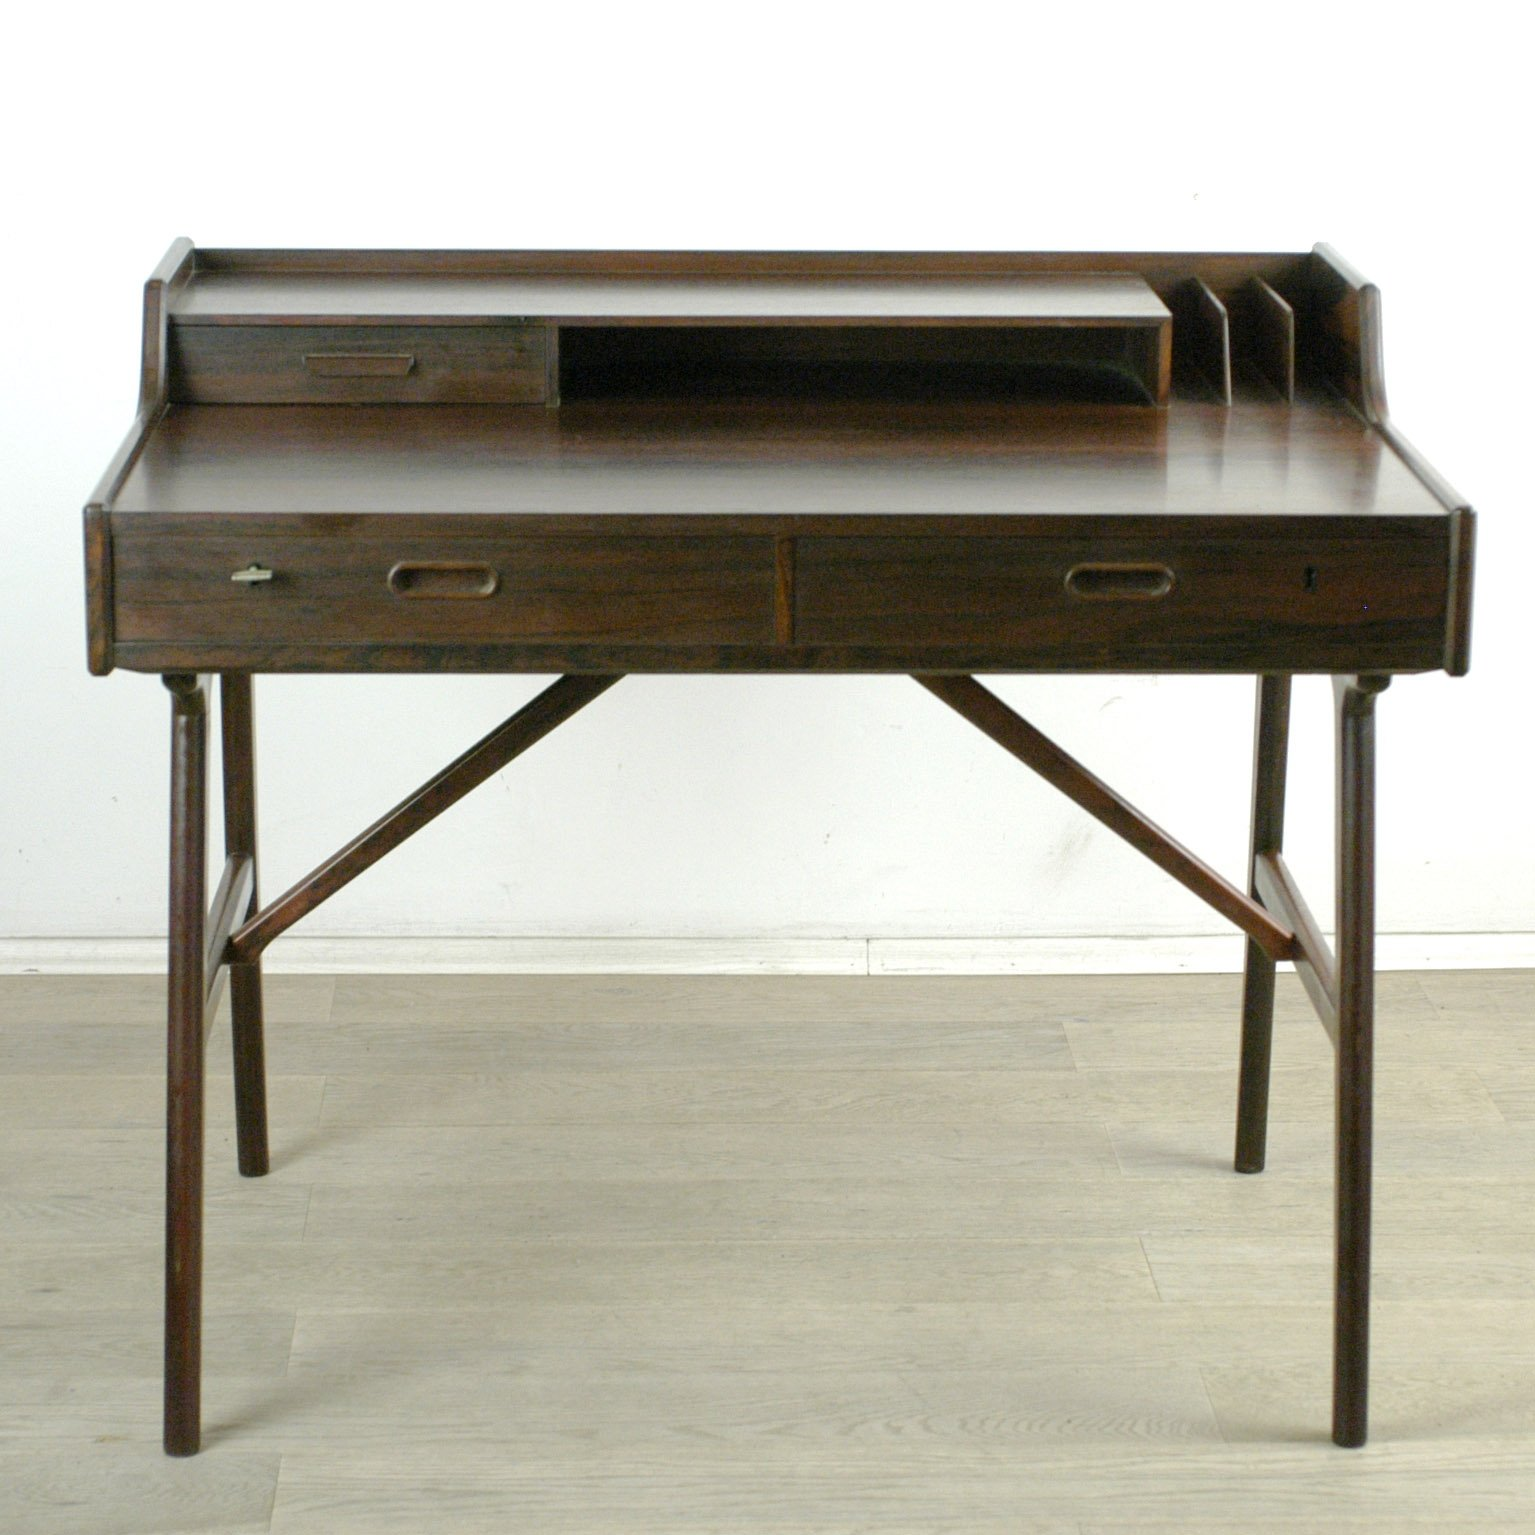 sale piretti tables modern platone for writing italy f z furniture mid century id at desk desks giancarlo by